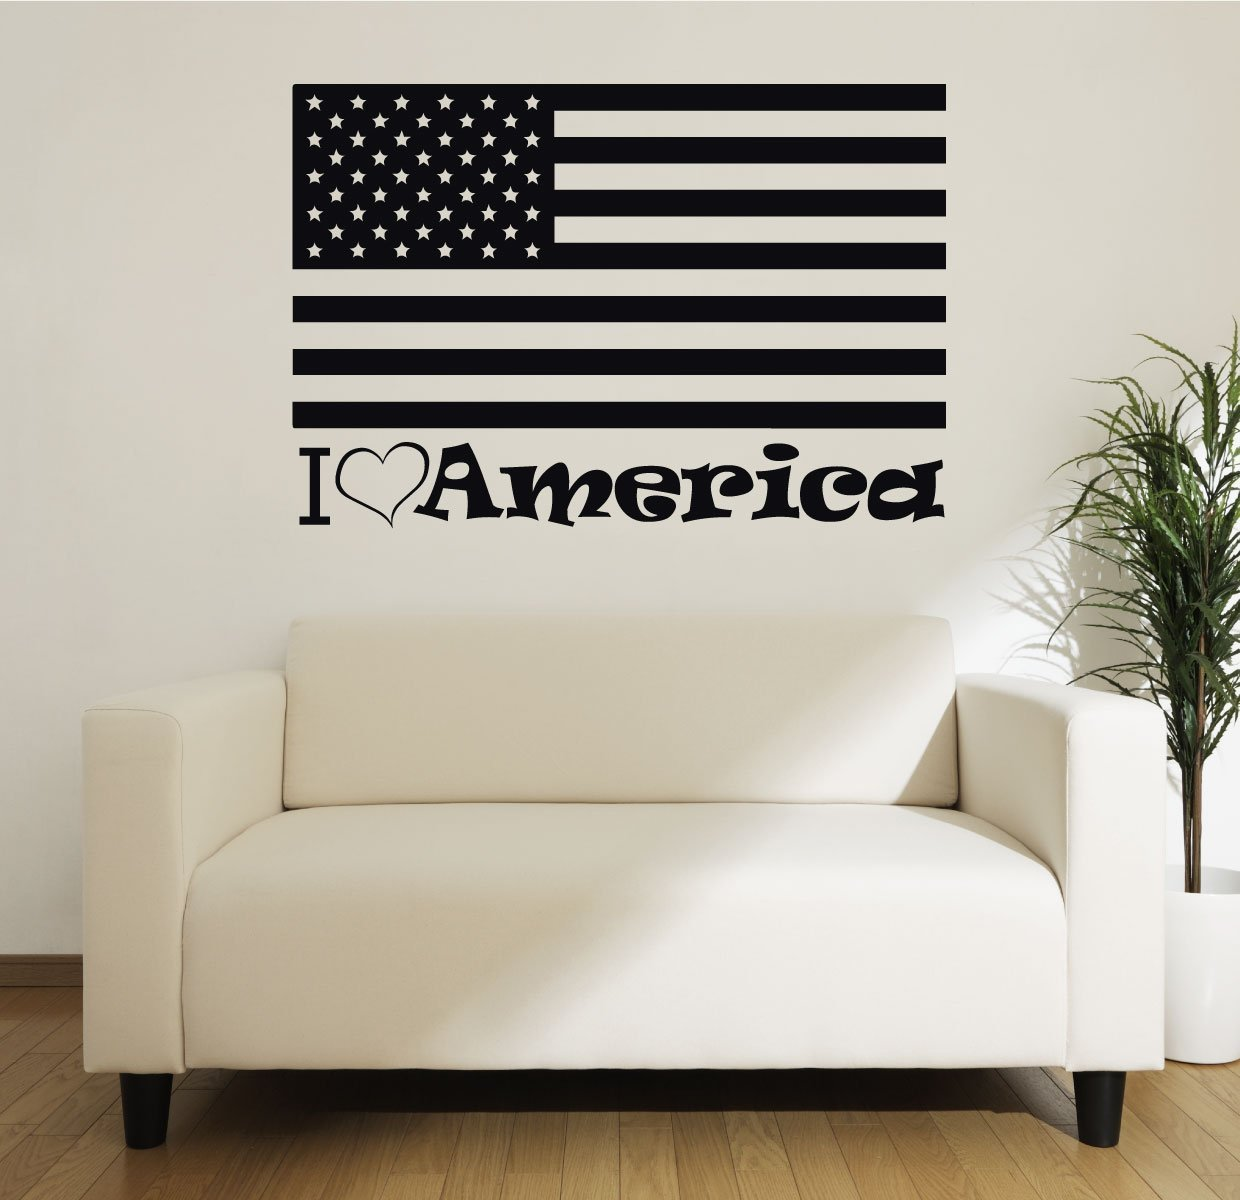 Patriotic Decals - I Love America - American Flag